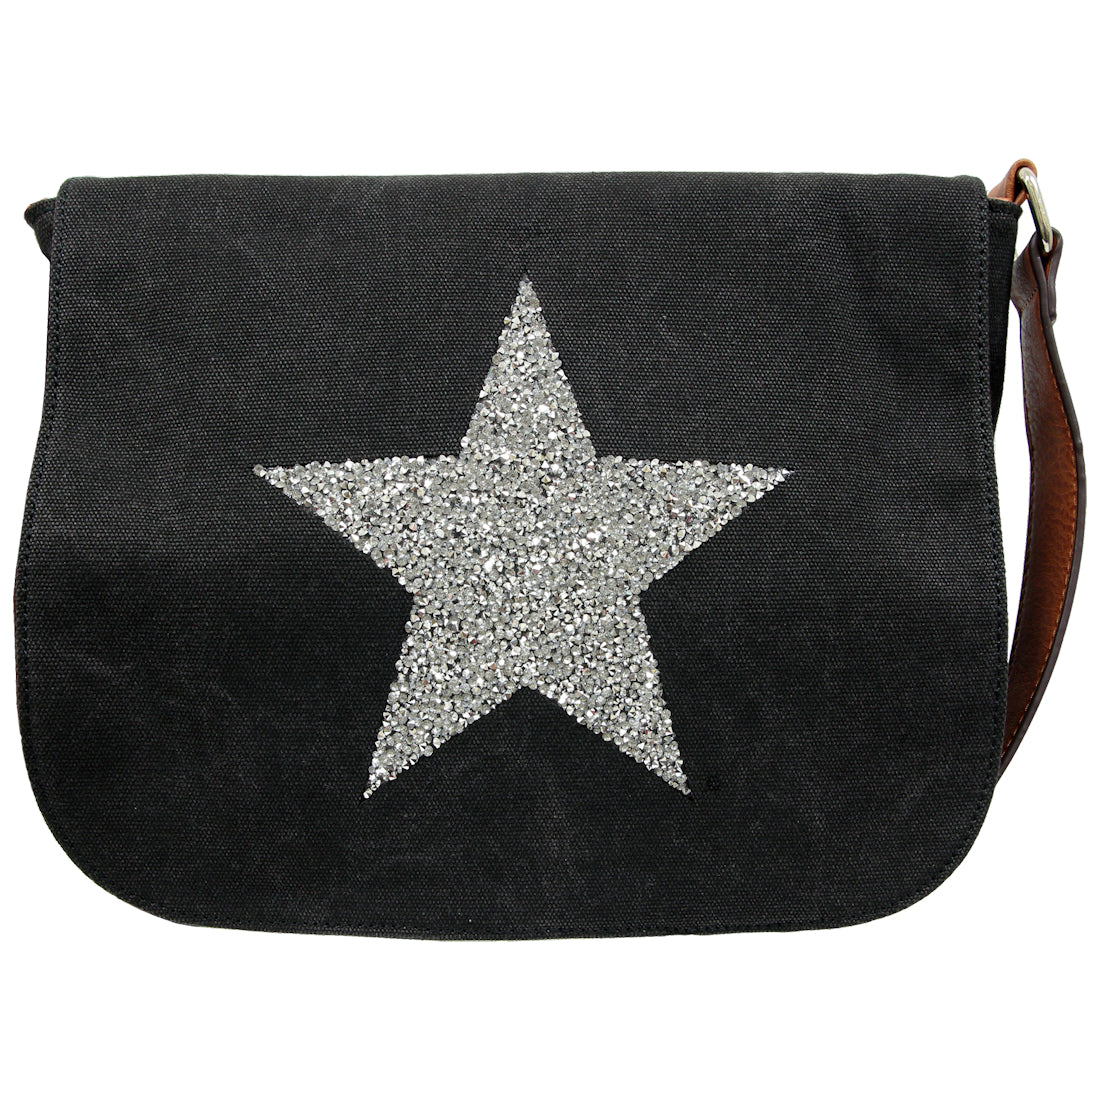 Star Power Crossbody Bag  Black